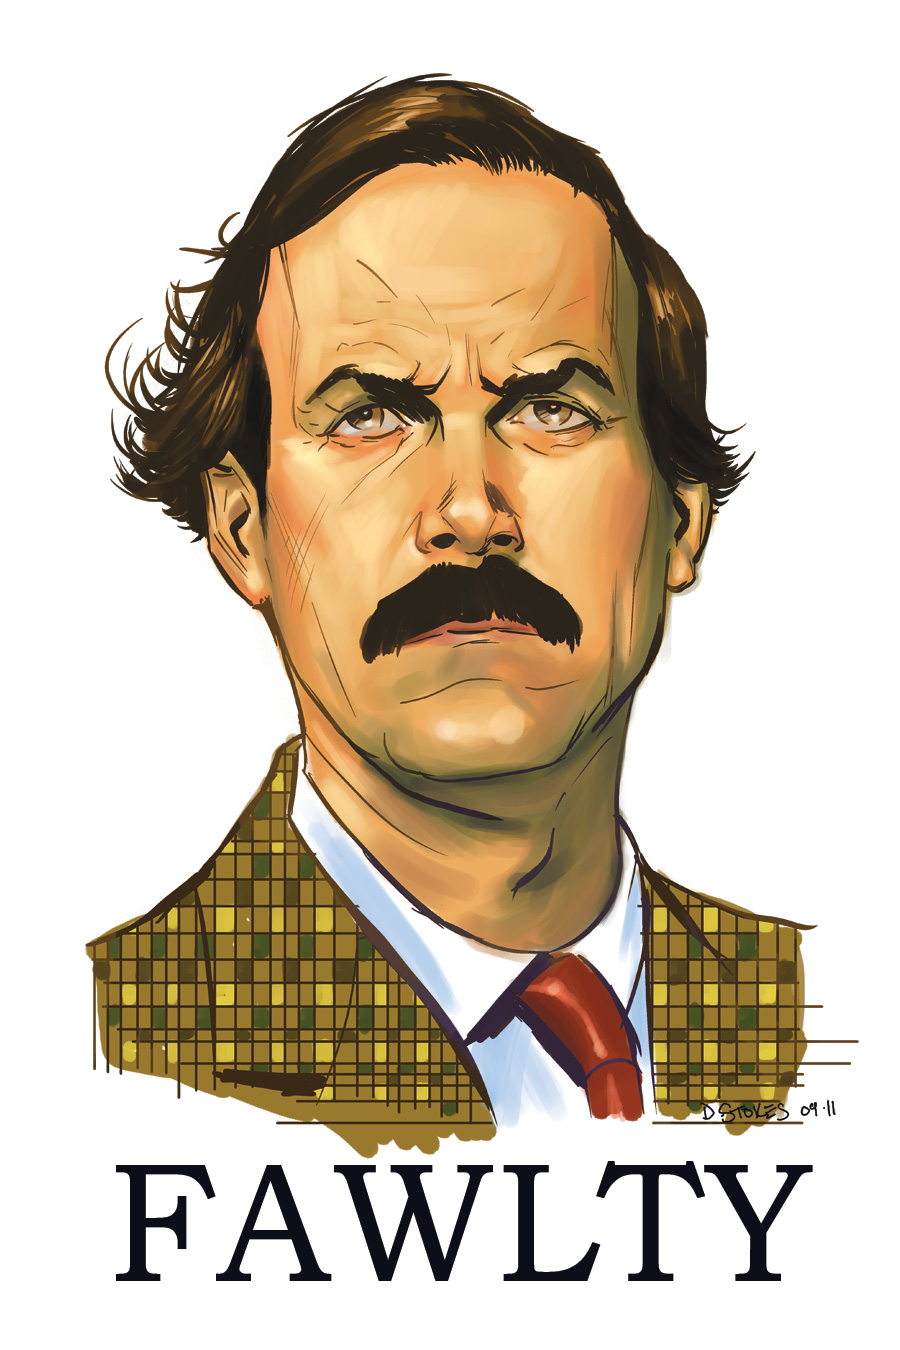 Fawlty Towers: Basil Fawlty by stokesbook - fawlty_towers__basil_fawlty_by_stokesbook-d48xxbk